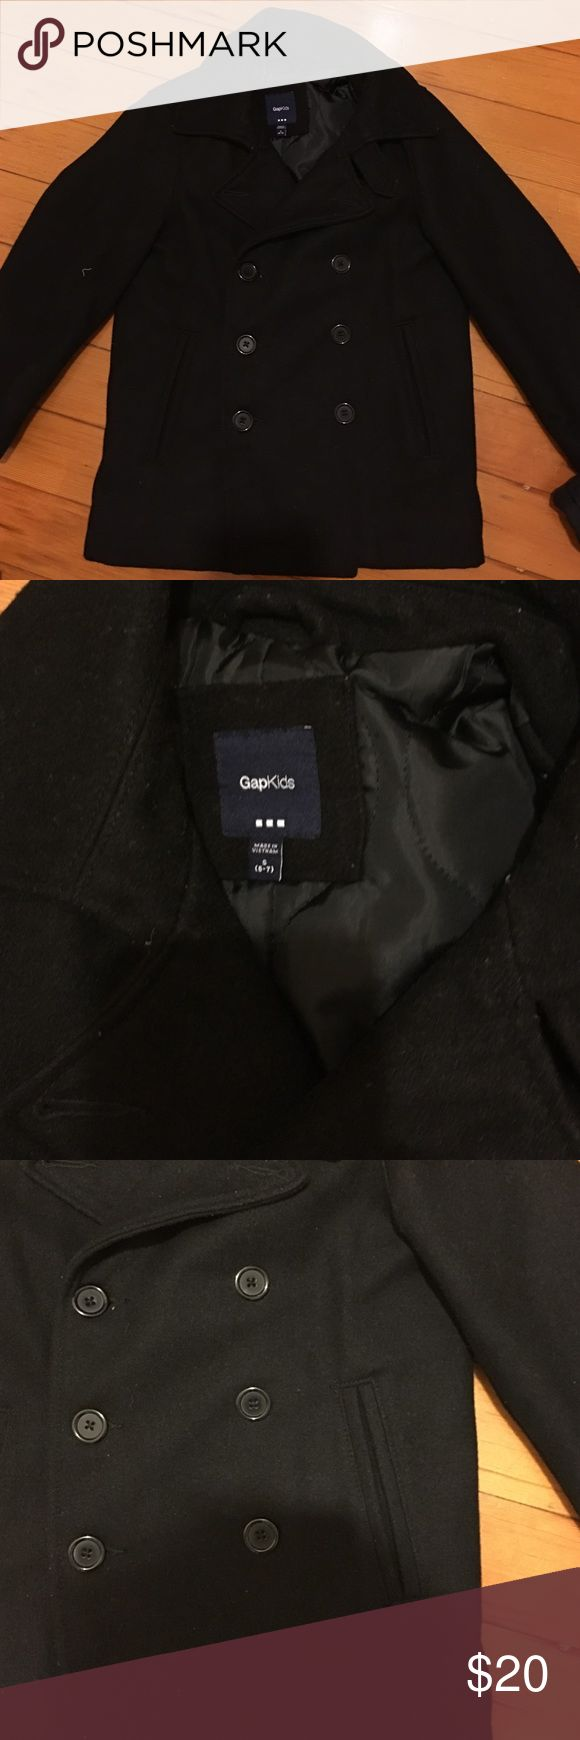 Gap coat Great condition gap coat Jackets & Coats Pea Coats